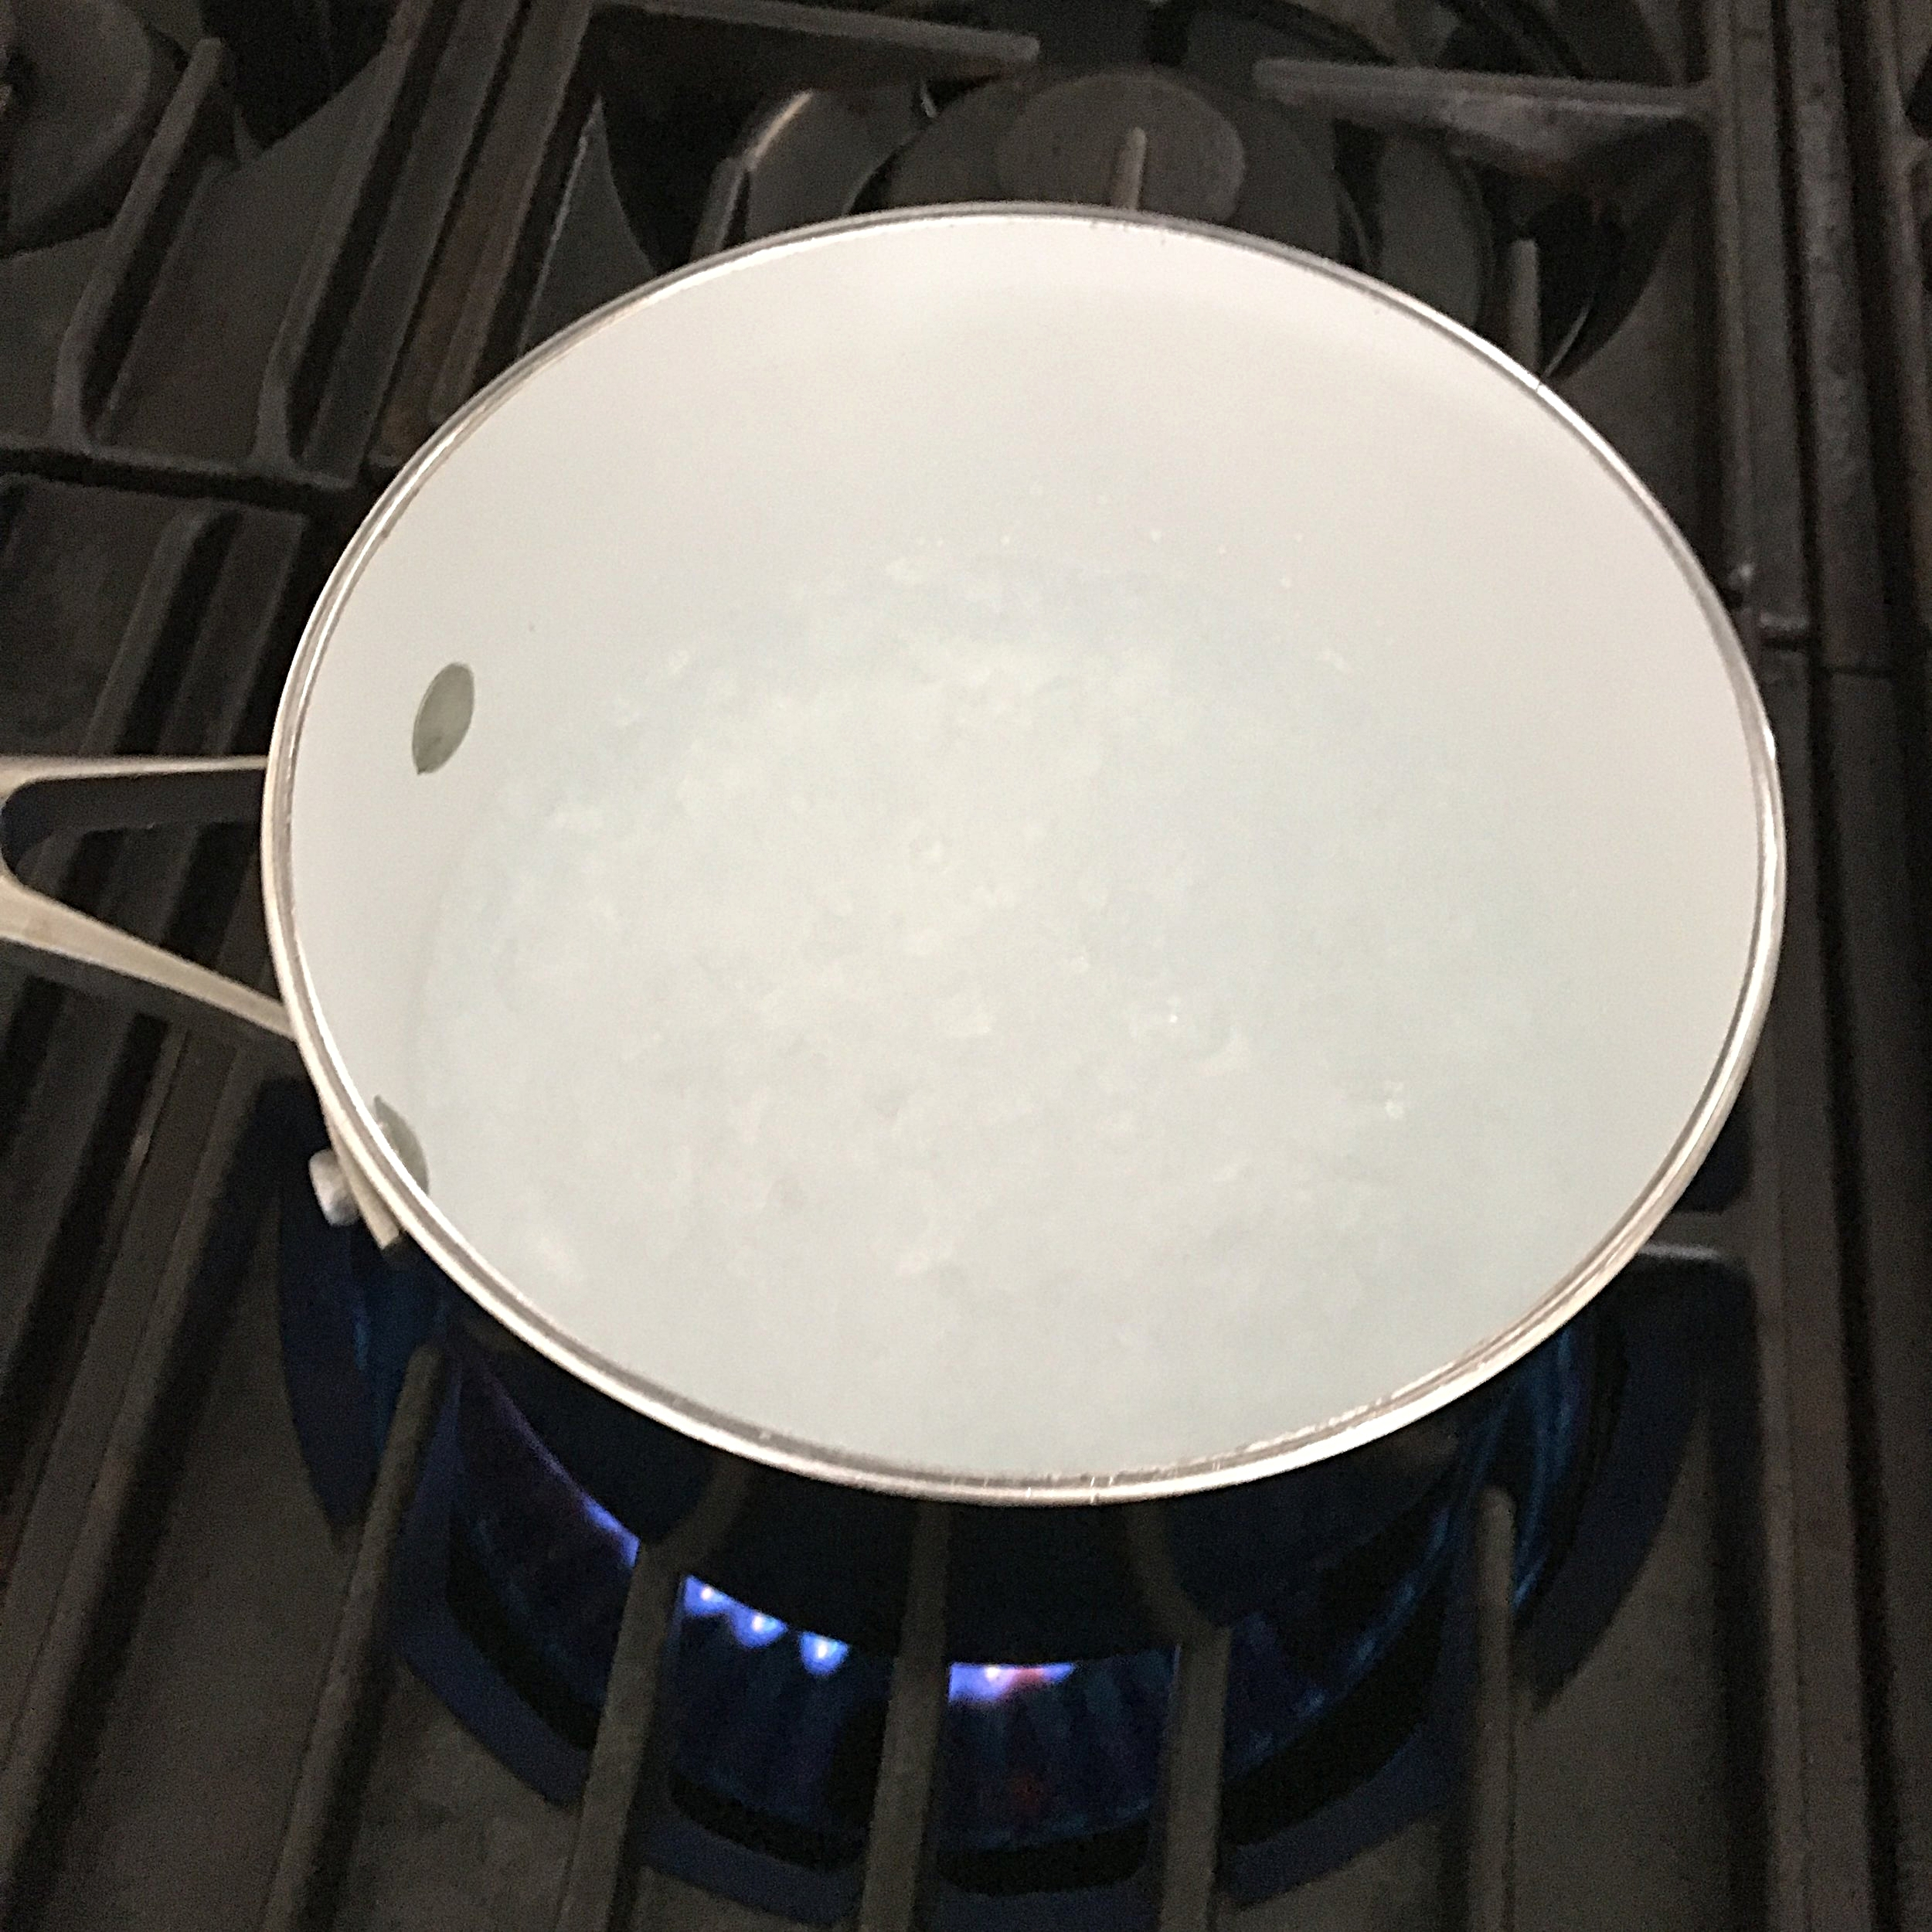 Step 1: Bring a pot of water to a boil